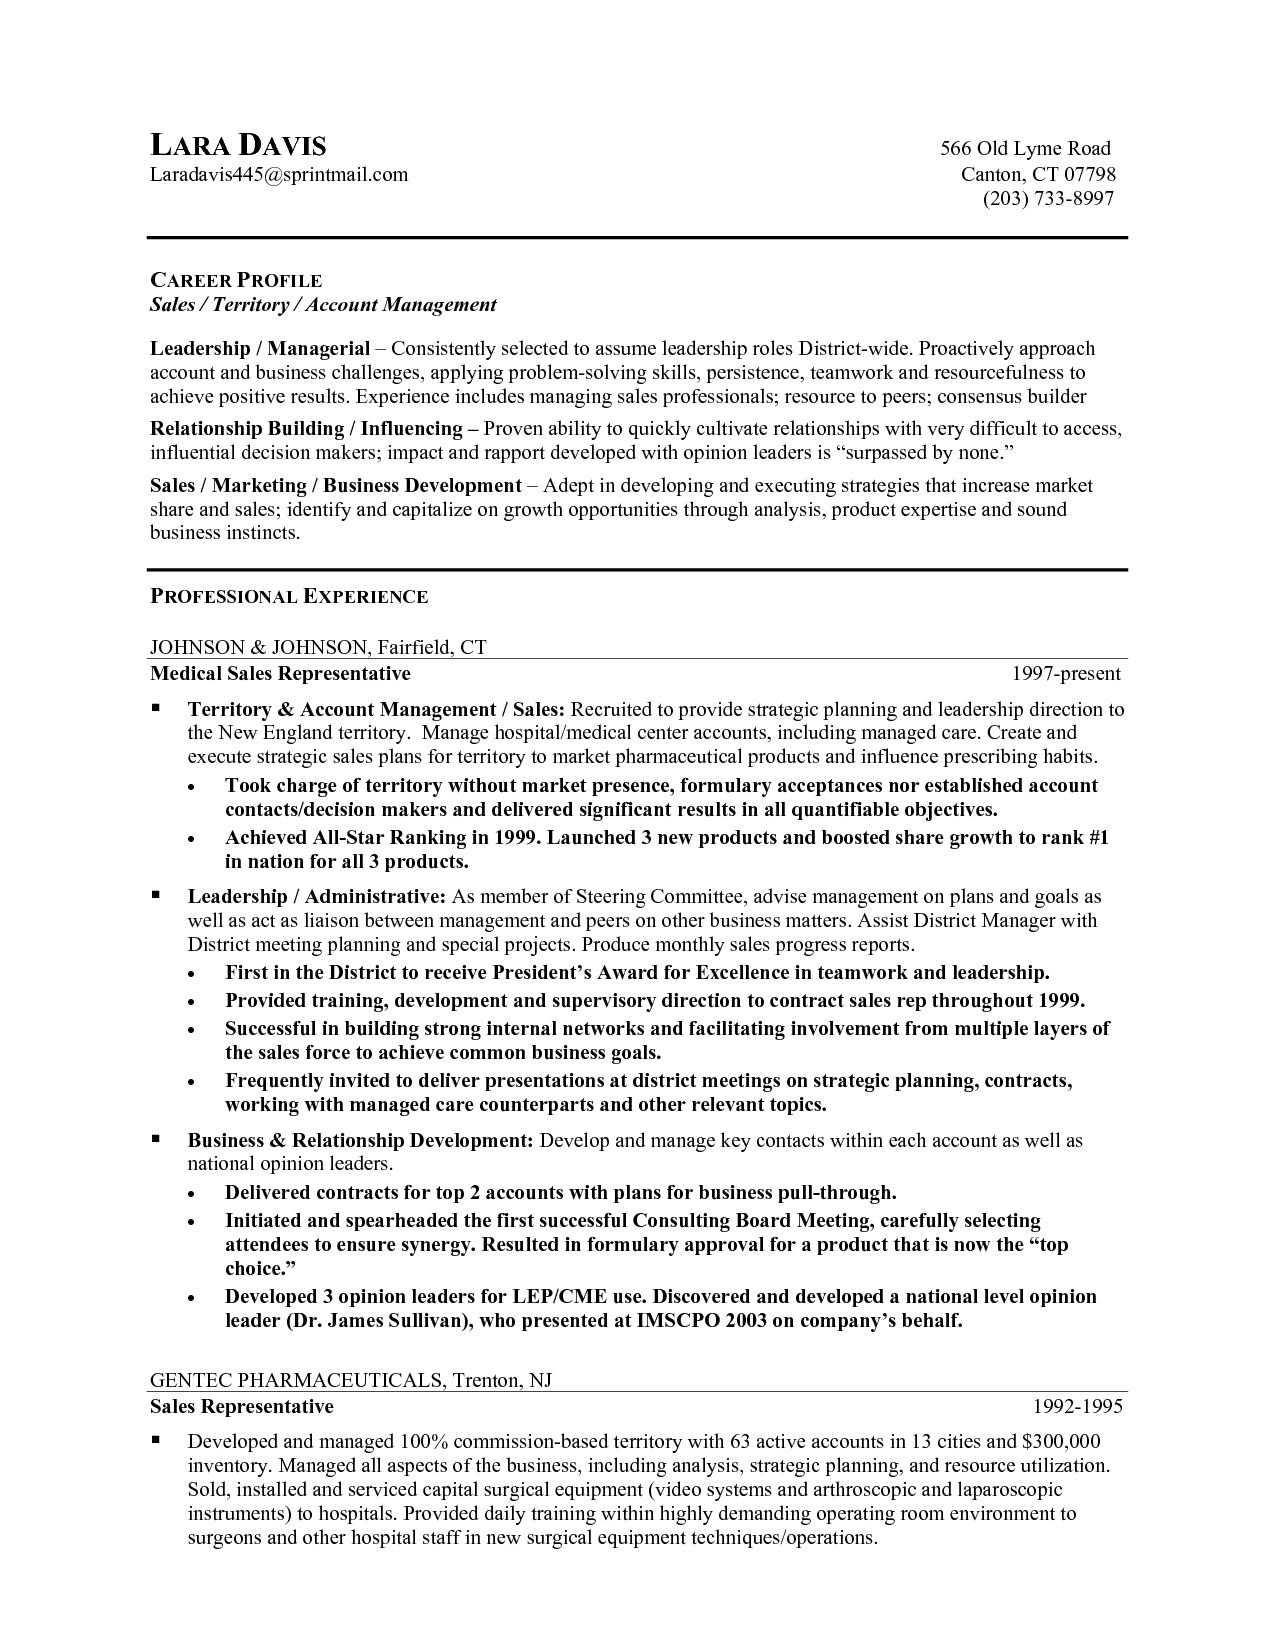 Examples Of An Objective Statement On A Resume لم يسبق له مثيل